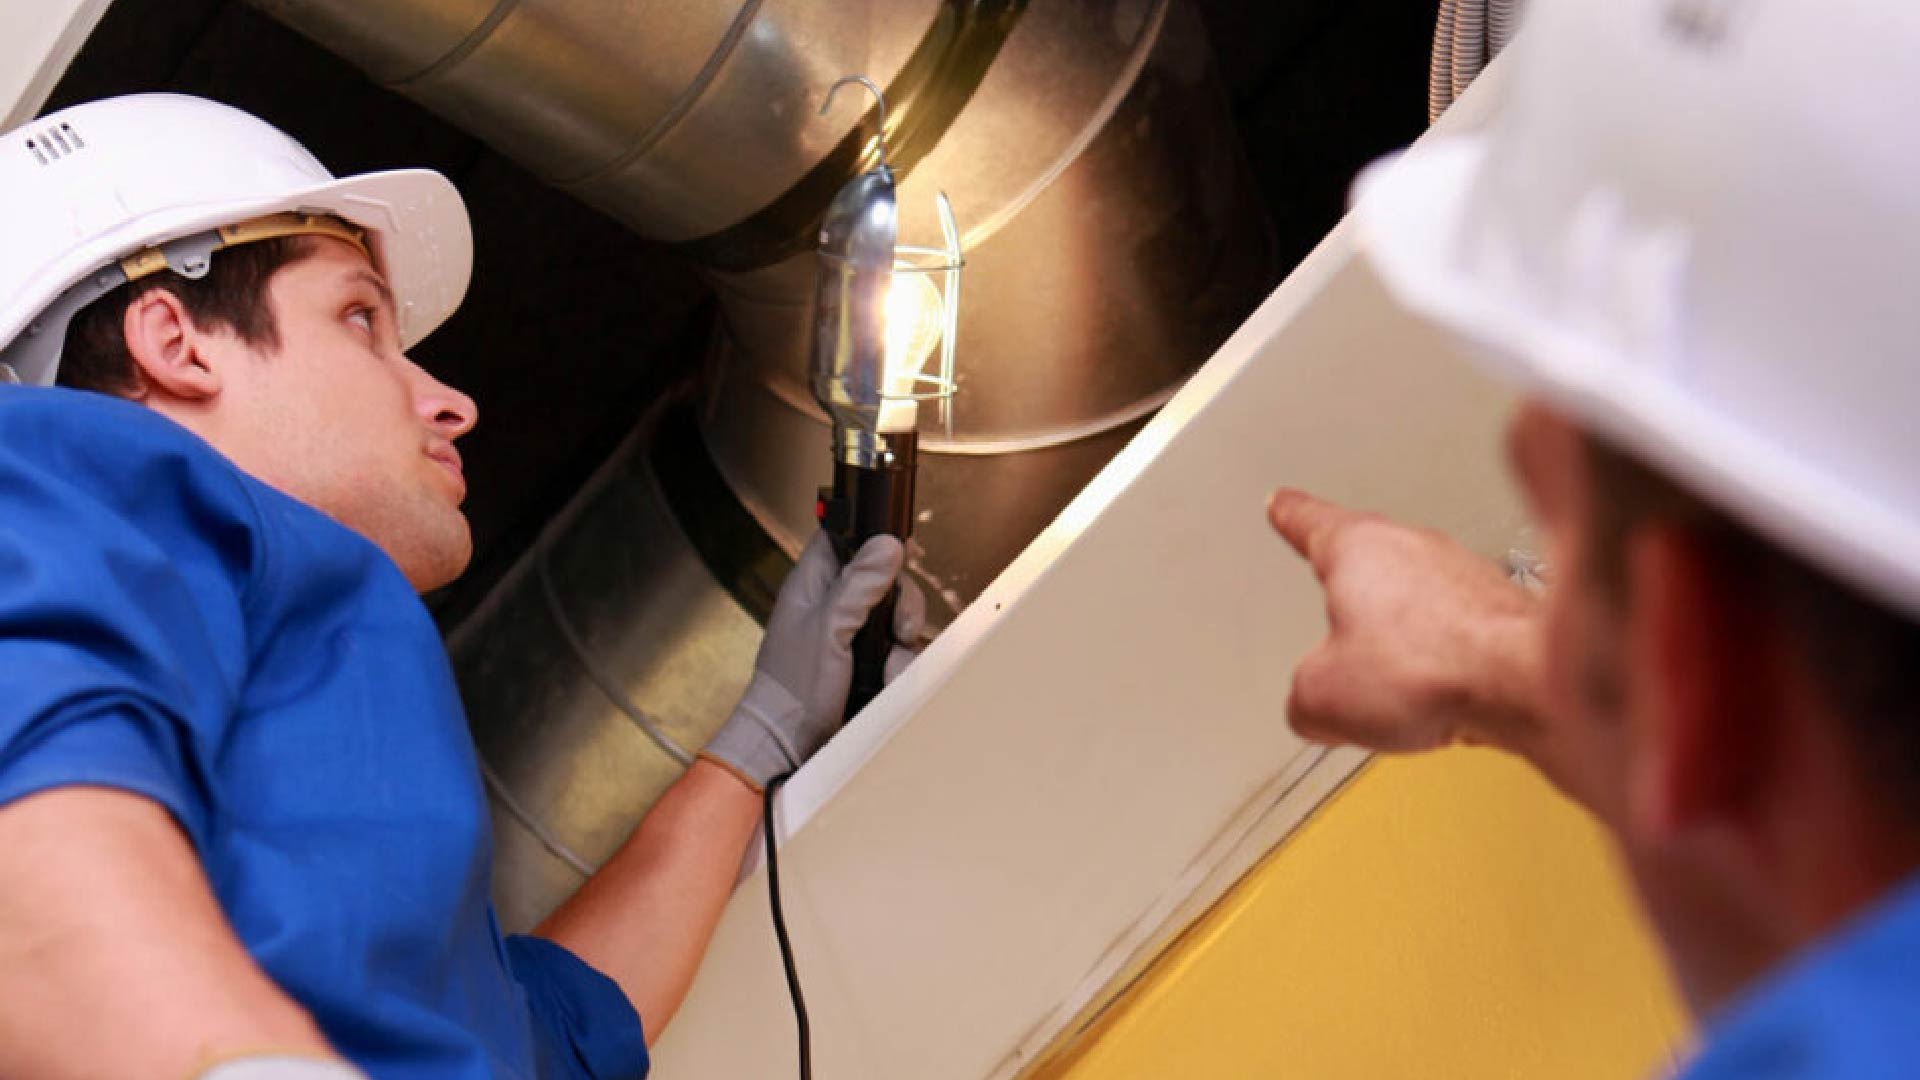 Commercial Air Duct Cleaning | S & R Air Duct Cleaning Services